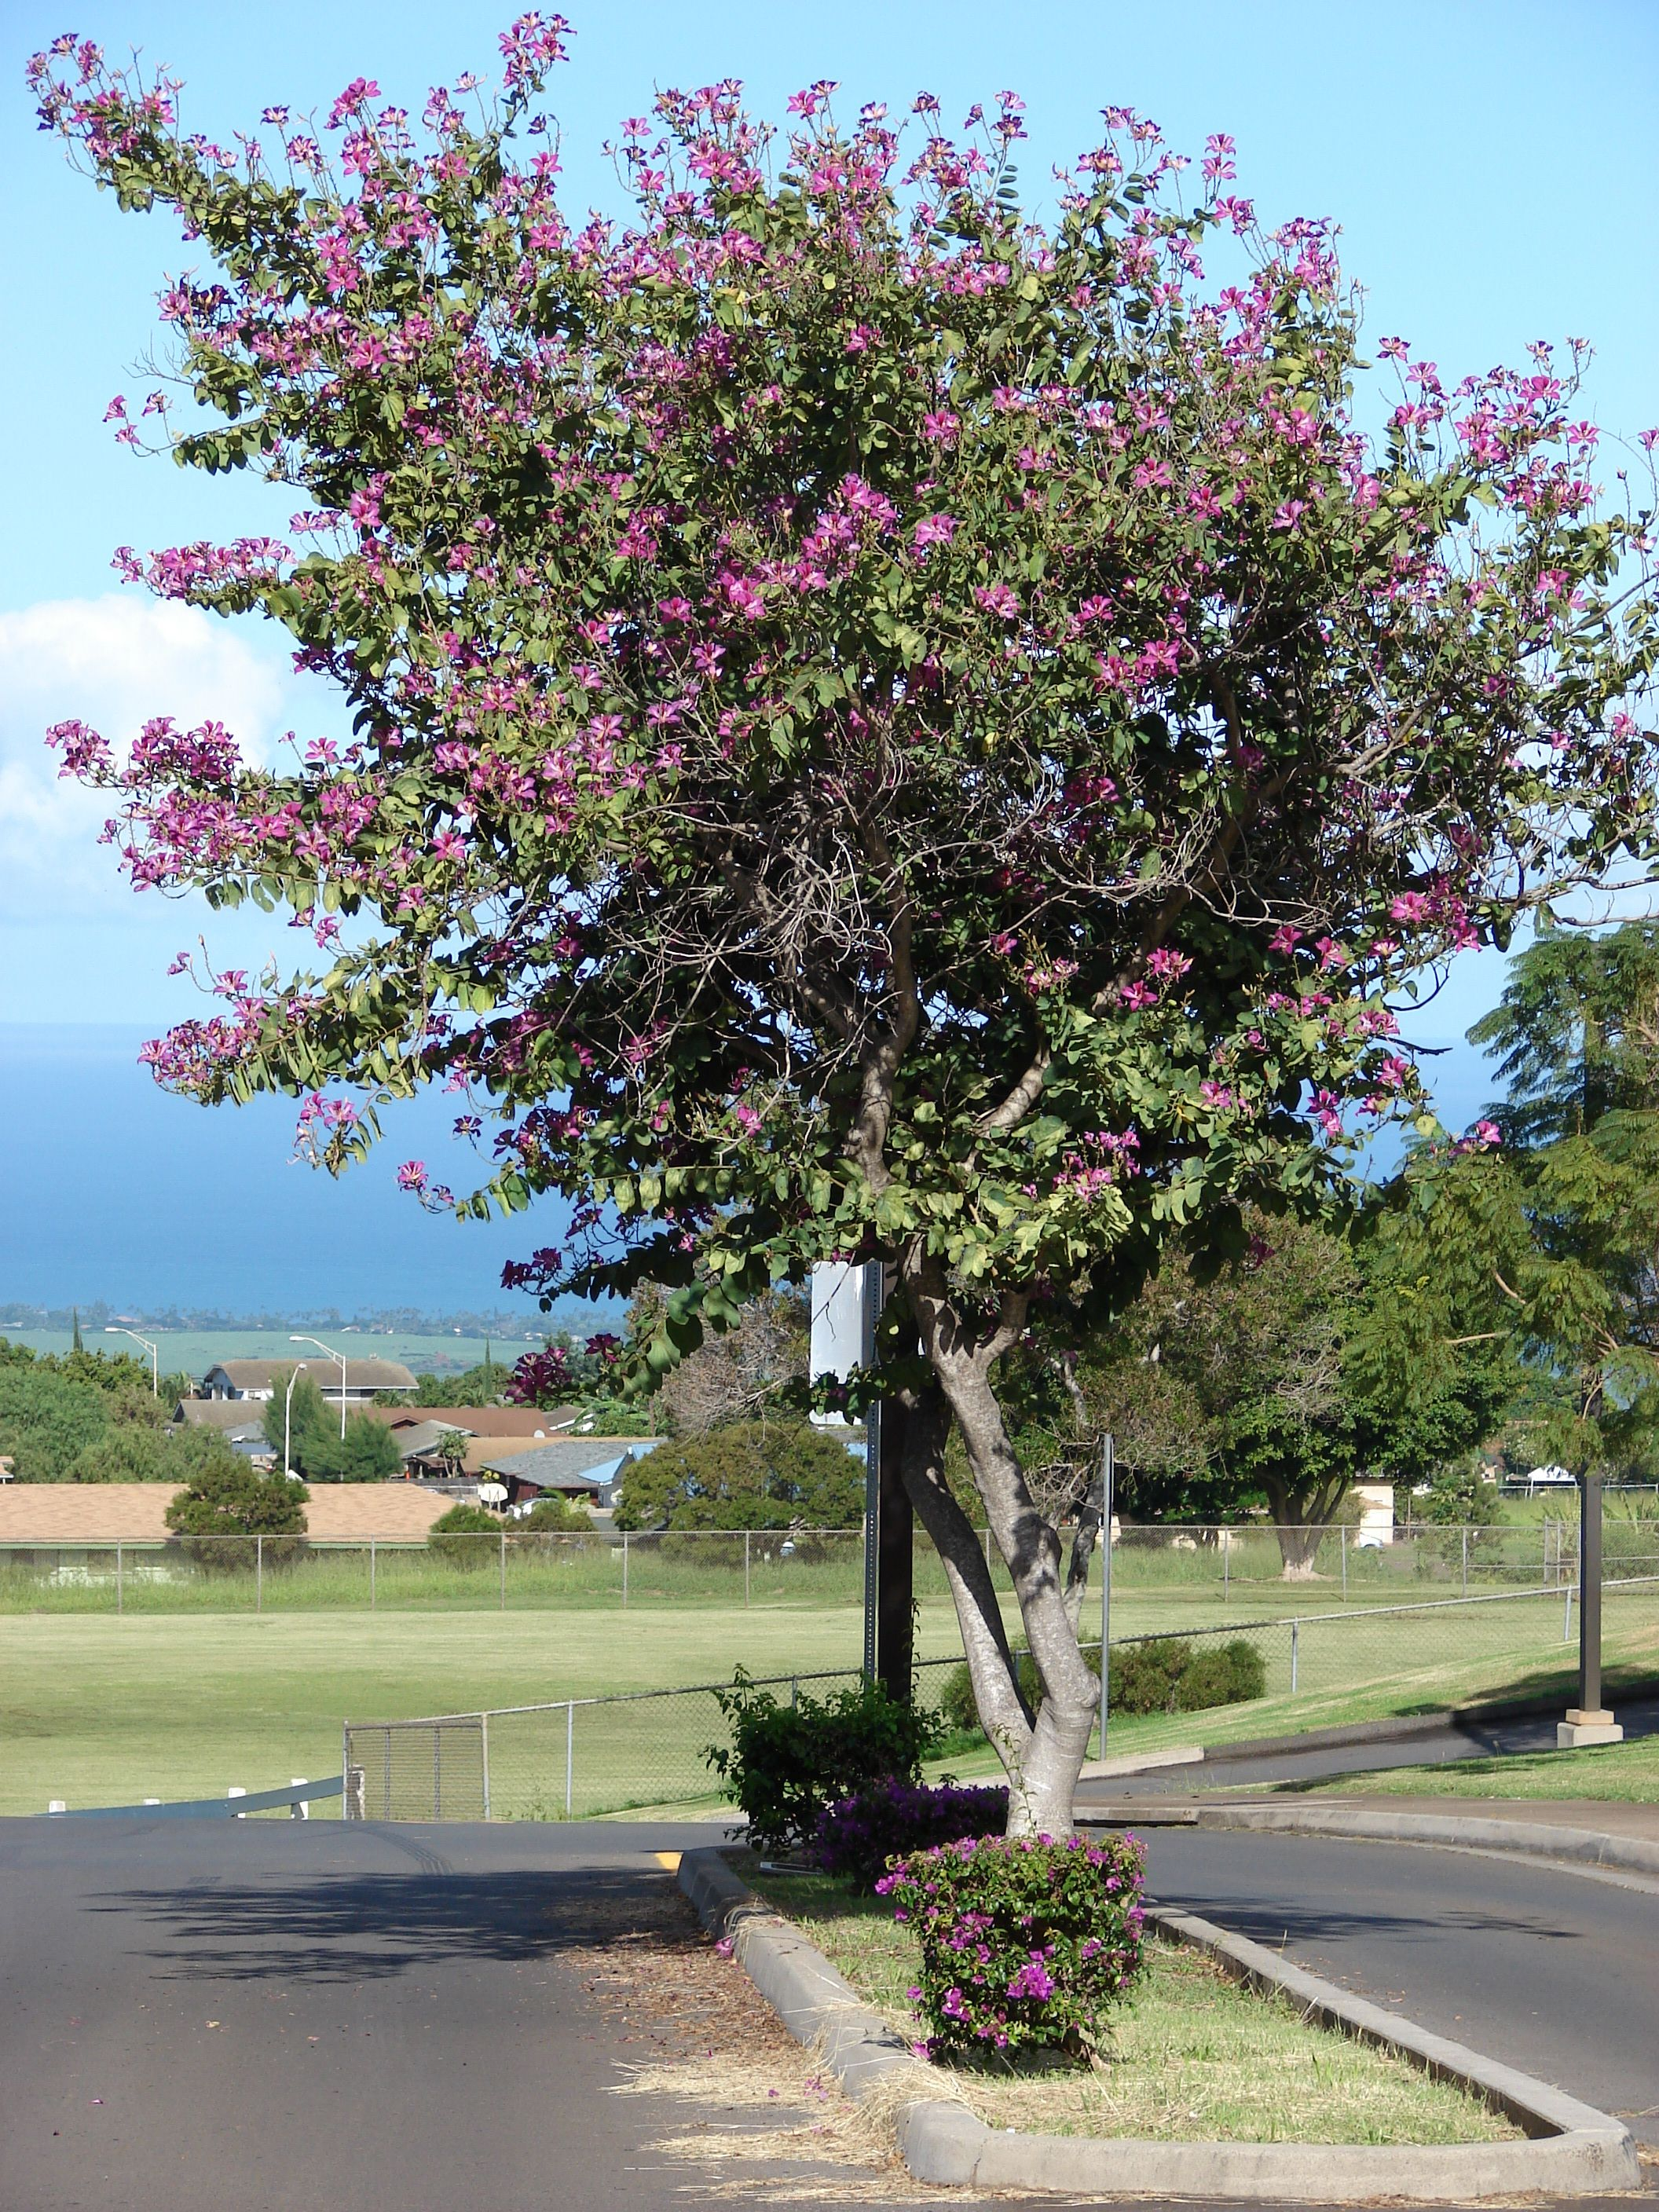 Bauhinia X Blakeana Hong Kong Orchid Tree Sun Ls 20 40x20 25 Fragrant Blooms For 4 Months Nov Feb Drought Tolerant Some Periods Of No Leaves